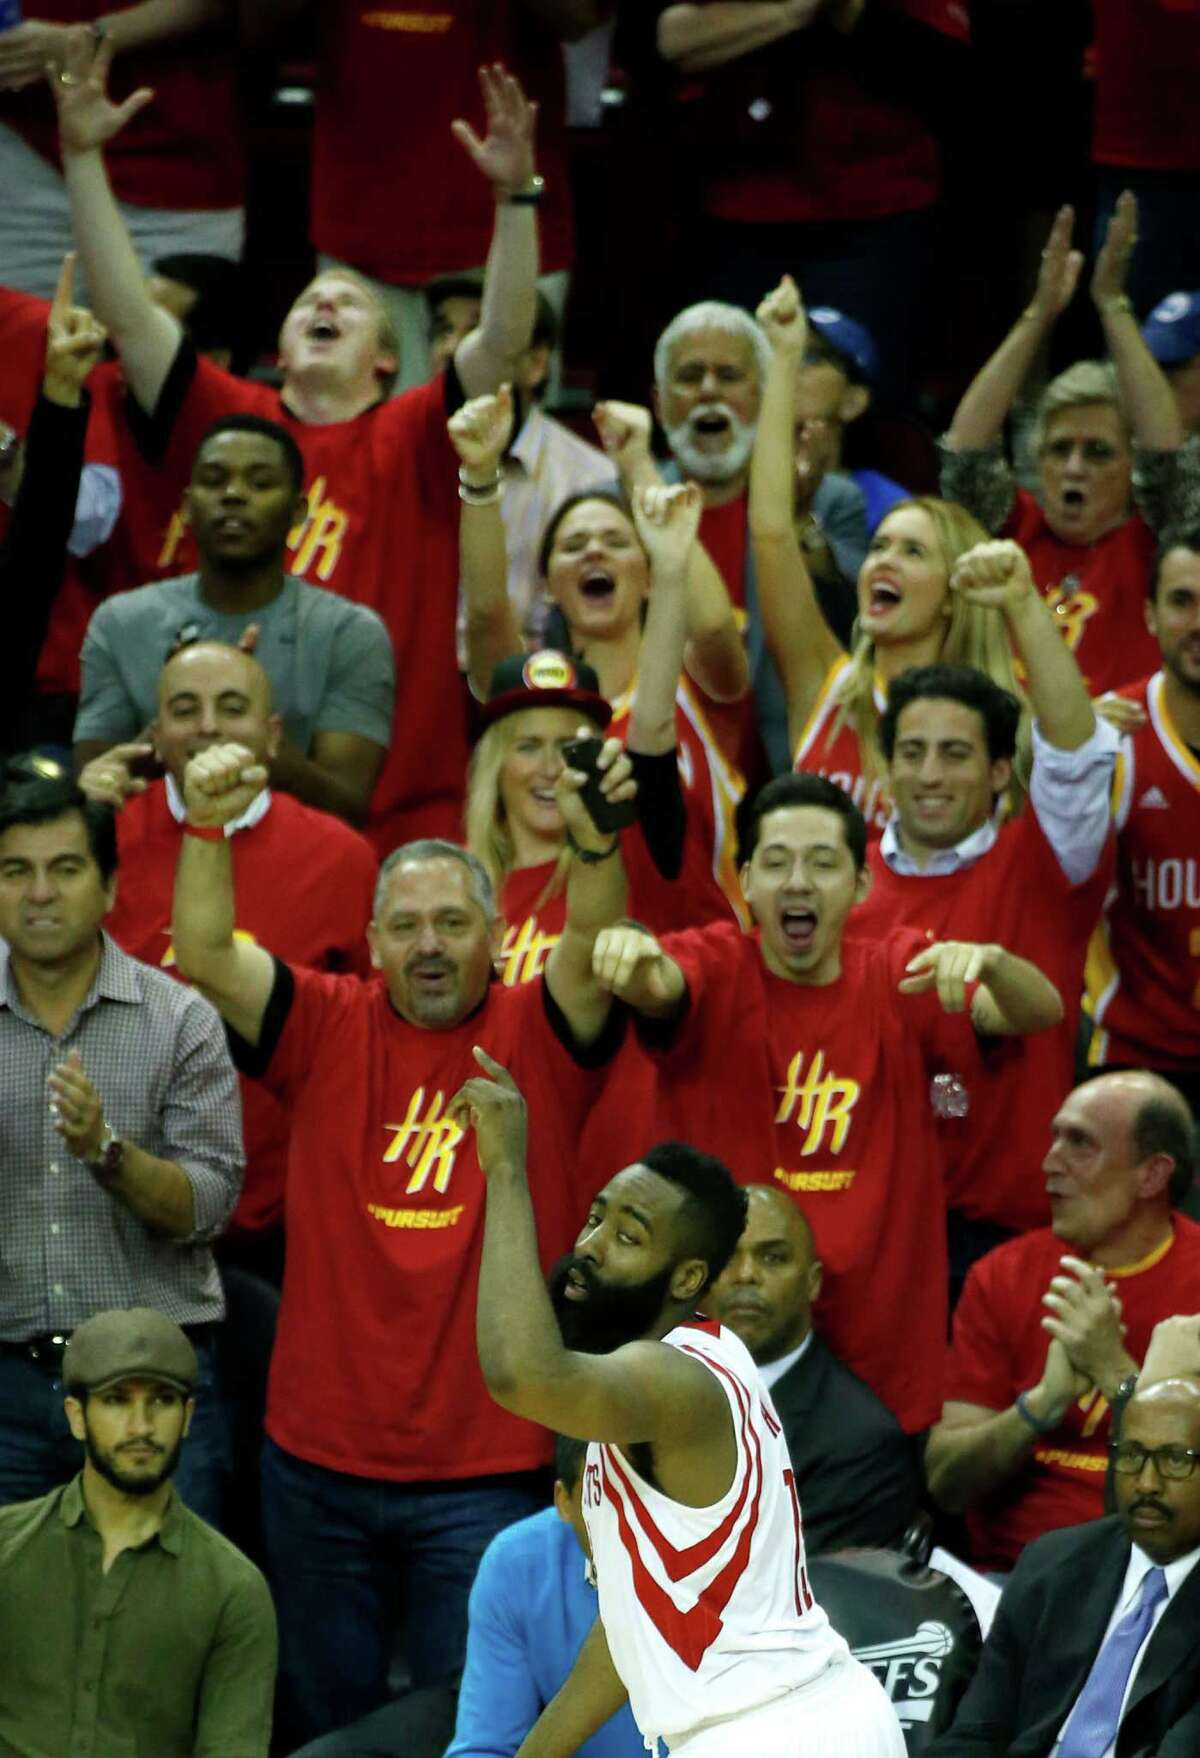 James Harden got used to hearing chants of